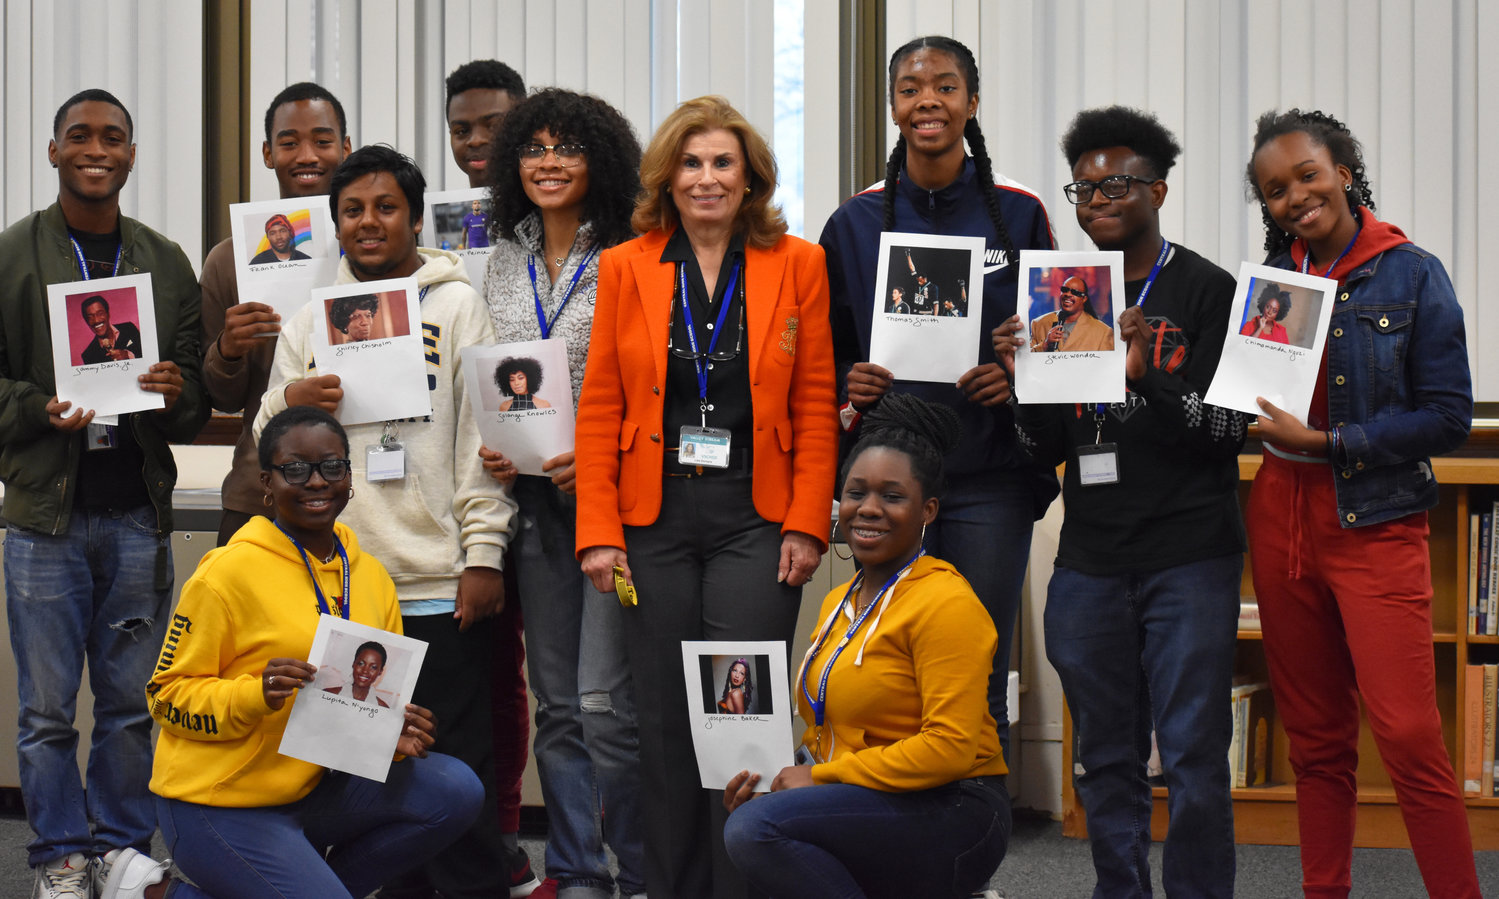 Ten Central High School students gathered in the school library on Feb. 13 to give presentations on black figures that inspire them. With them, at center, was library Media Specialist Lisa Dichiara.